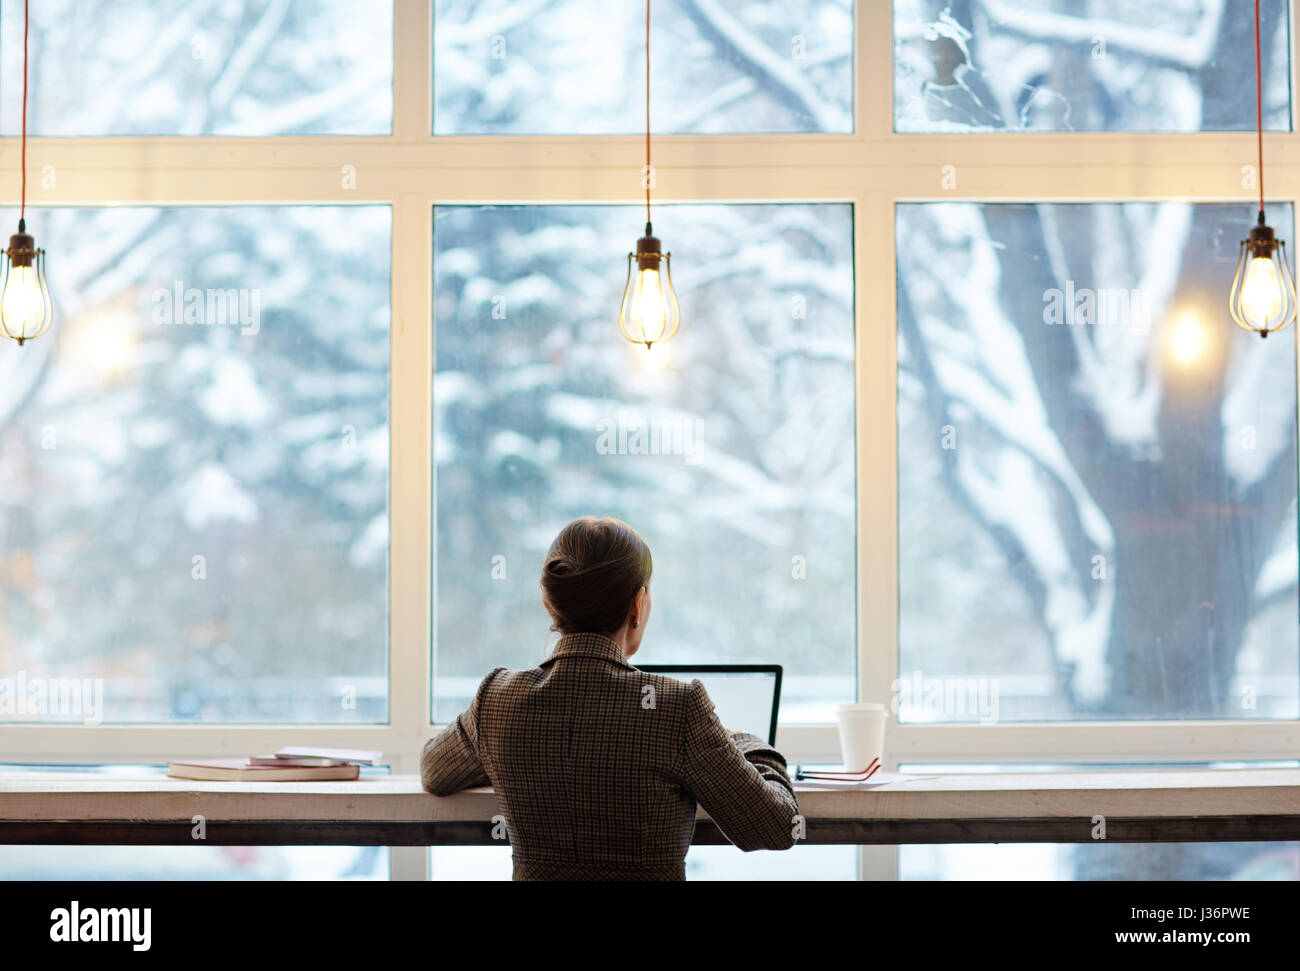 Working in Cafe with Picturesque View - Stock Image